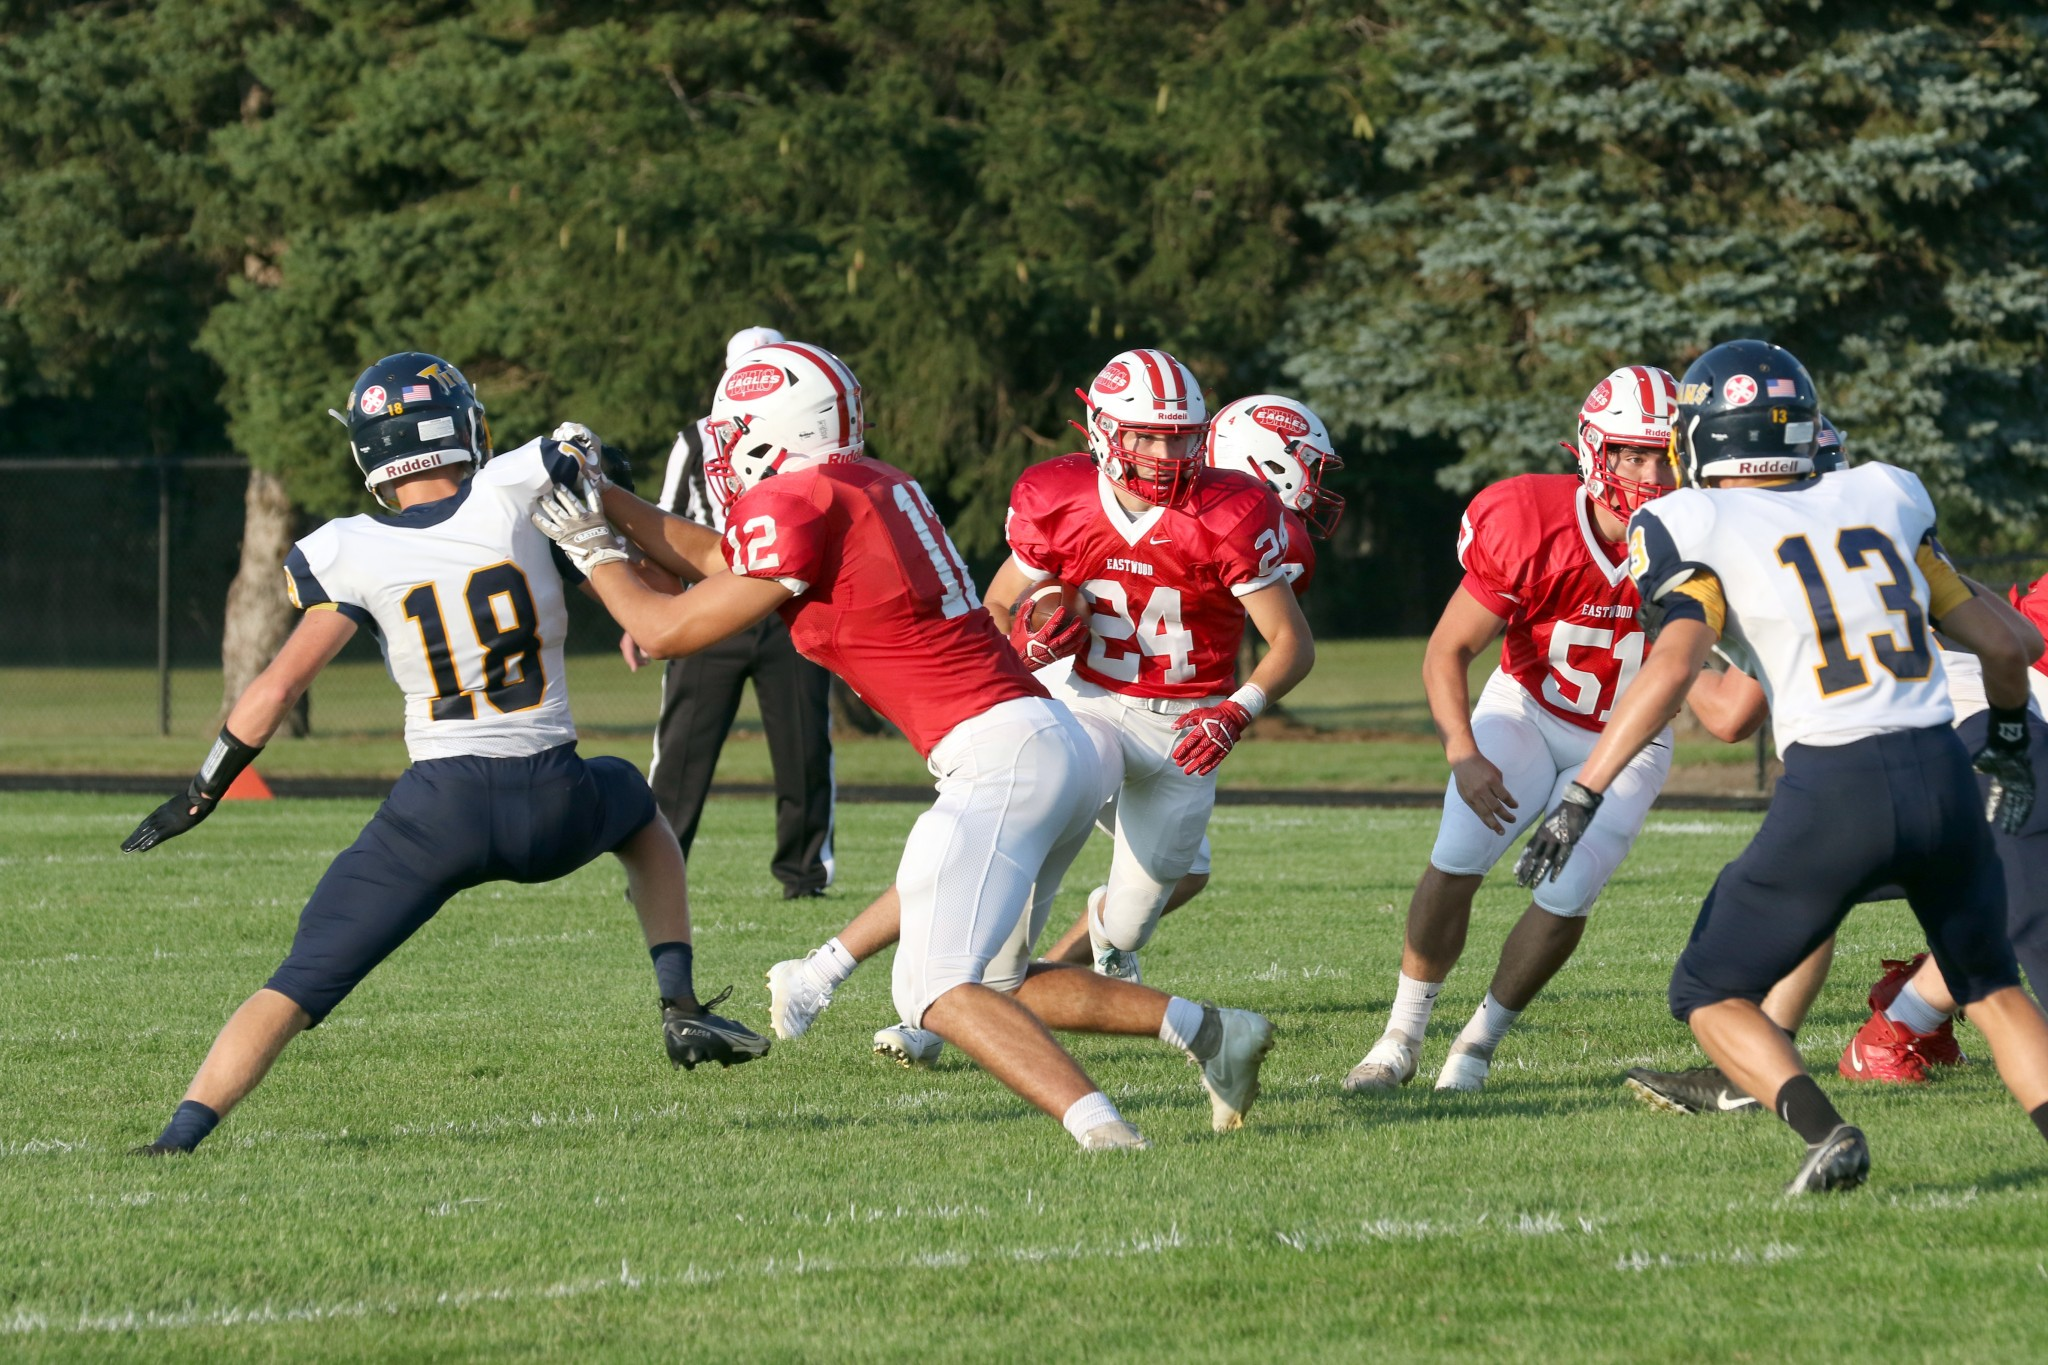 """Eastwood junior back Bryce Koprowski-Kistner gets good blocking during the Eagles' win over Ottawa-Glandorf. (Press photo by Lee Welch/<a href=""""http://www.FamilyPhotoGroup.com"""">www.FamilyPhotoGroup.com</a>)"""